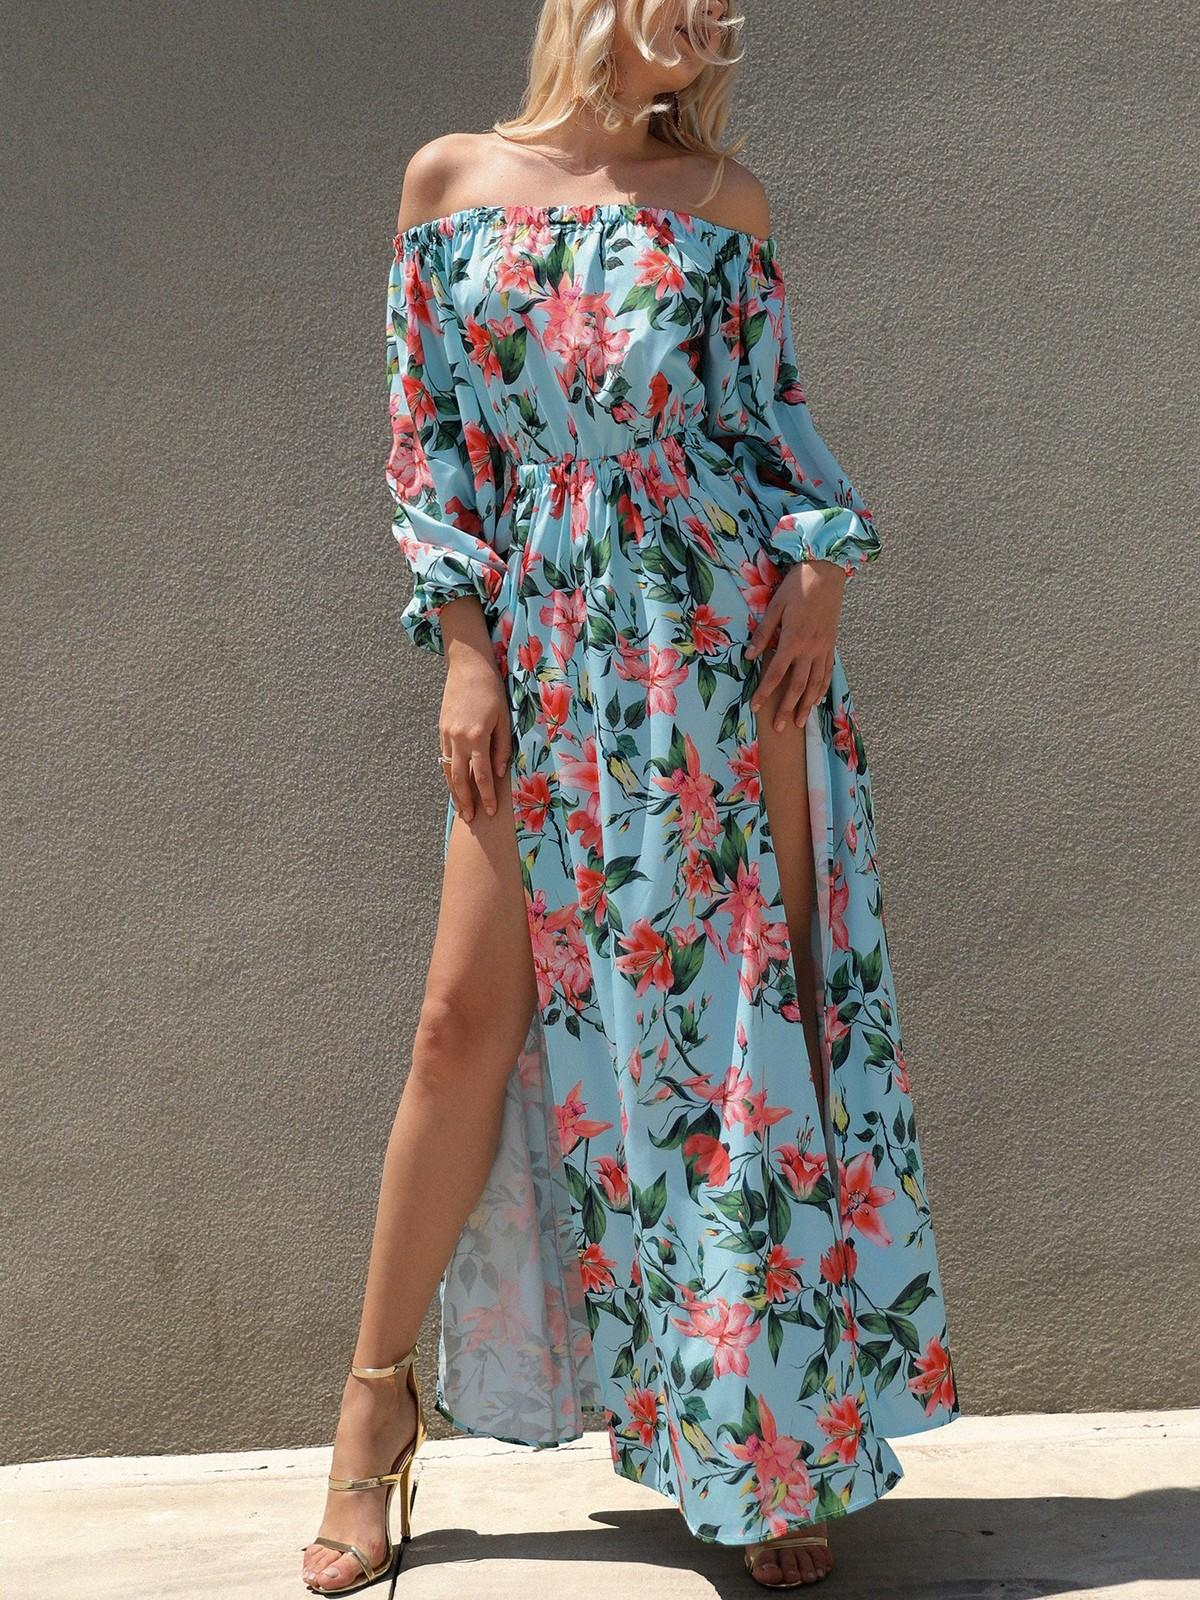 f958da436d Sexy Women Summer Boho Long Maxi Dress Evening Party Print Beach Dresses  Sundress Fashion Female Clothes Teenage Dresses For Sale Long Sleeve Casual  Dresses ...